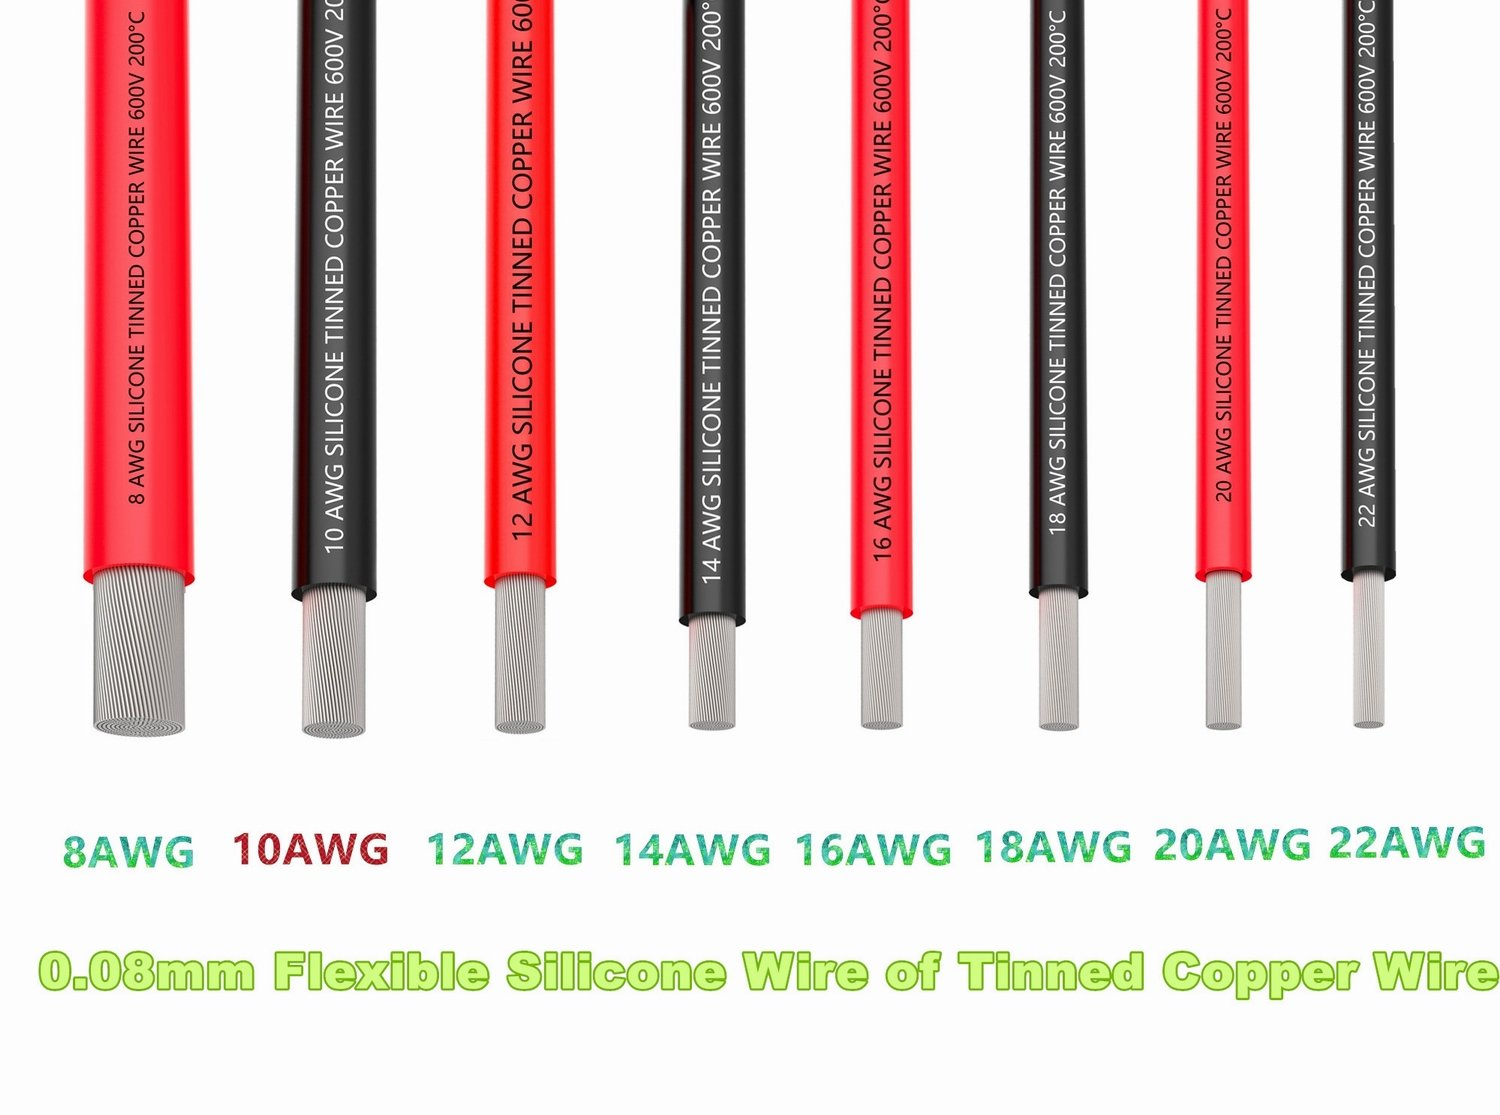 Amazon.com: TUOFENG 10 AWG Silicone Wire 10 Feet red black wire - 10 ...